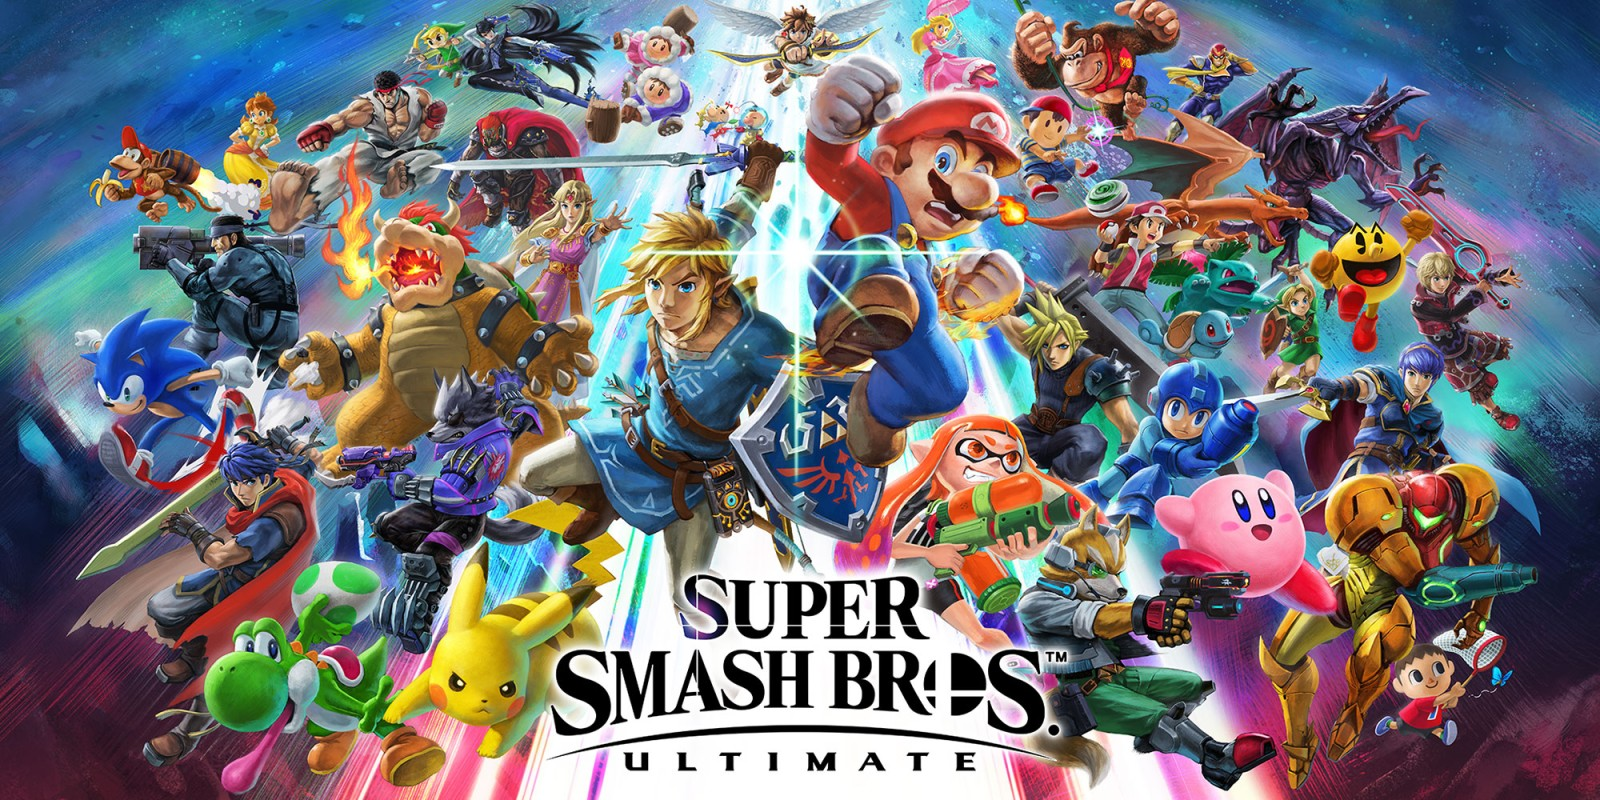 Will an indie settle it in Smash? – Indie Gamer Team